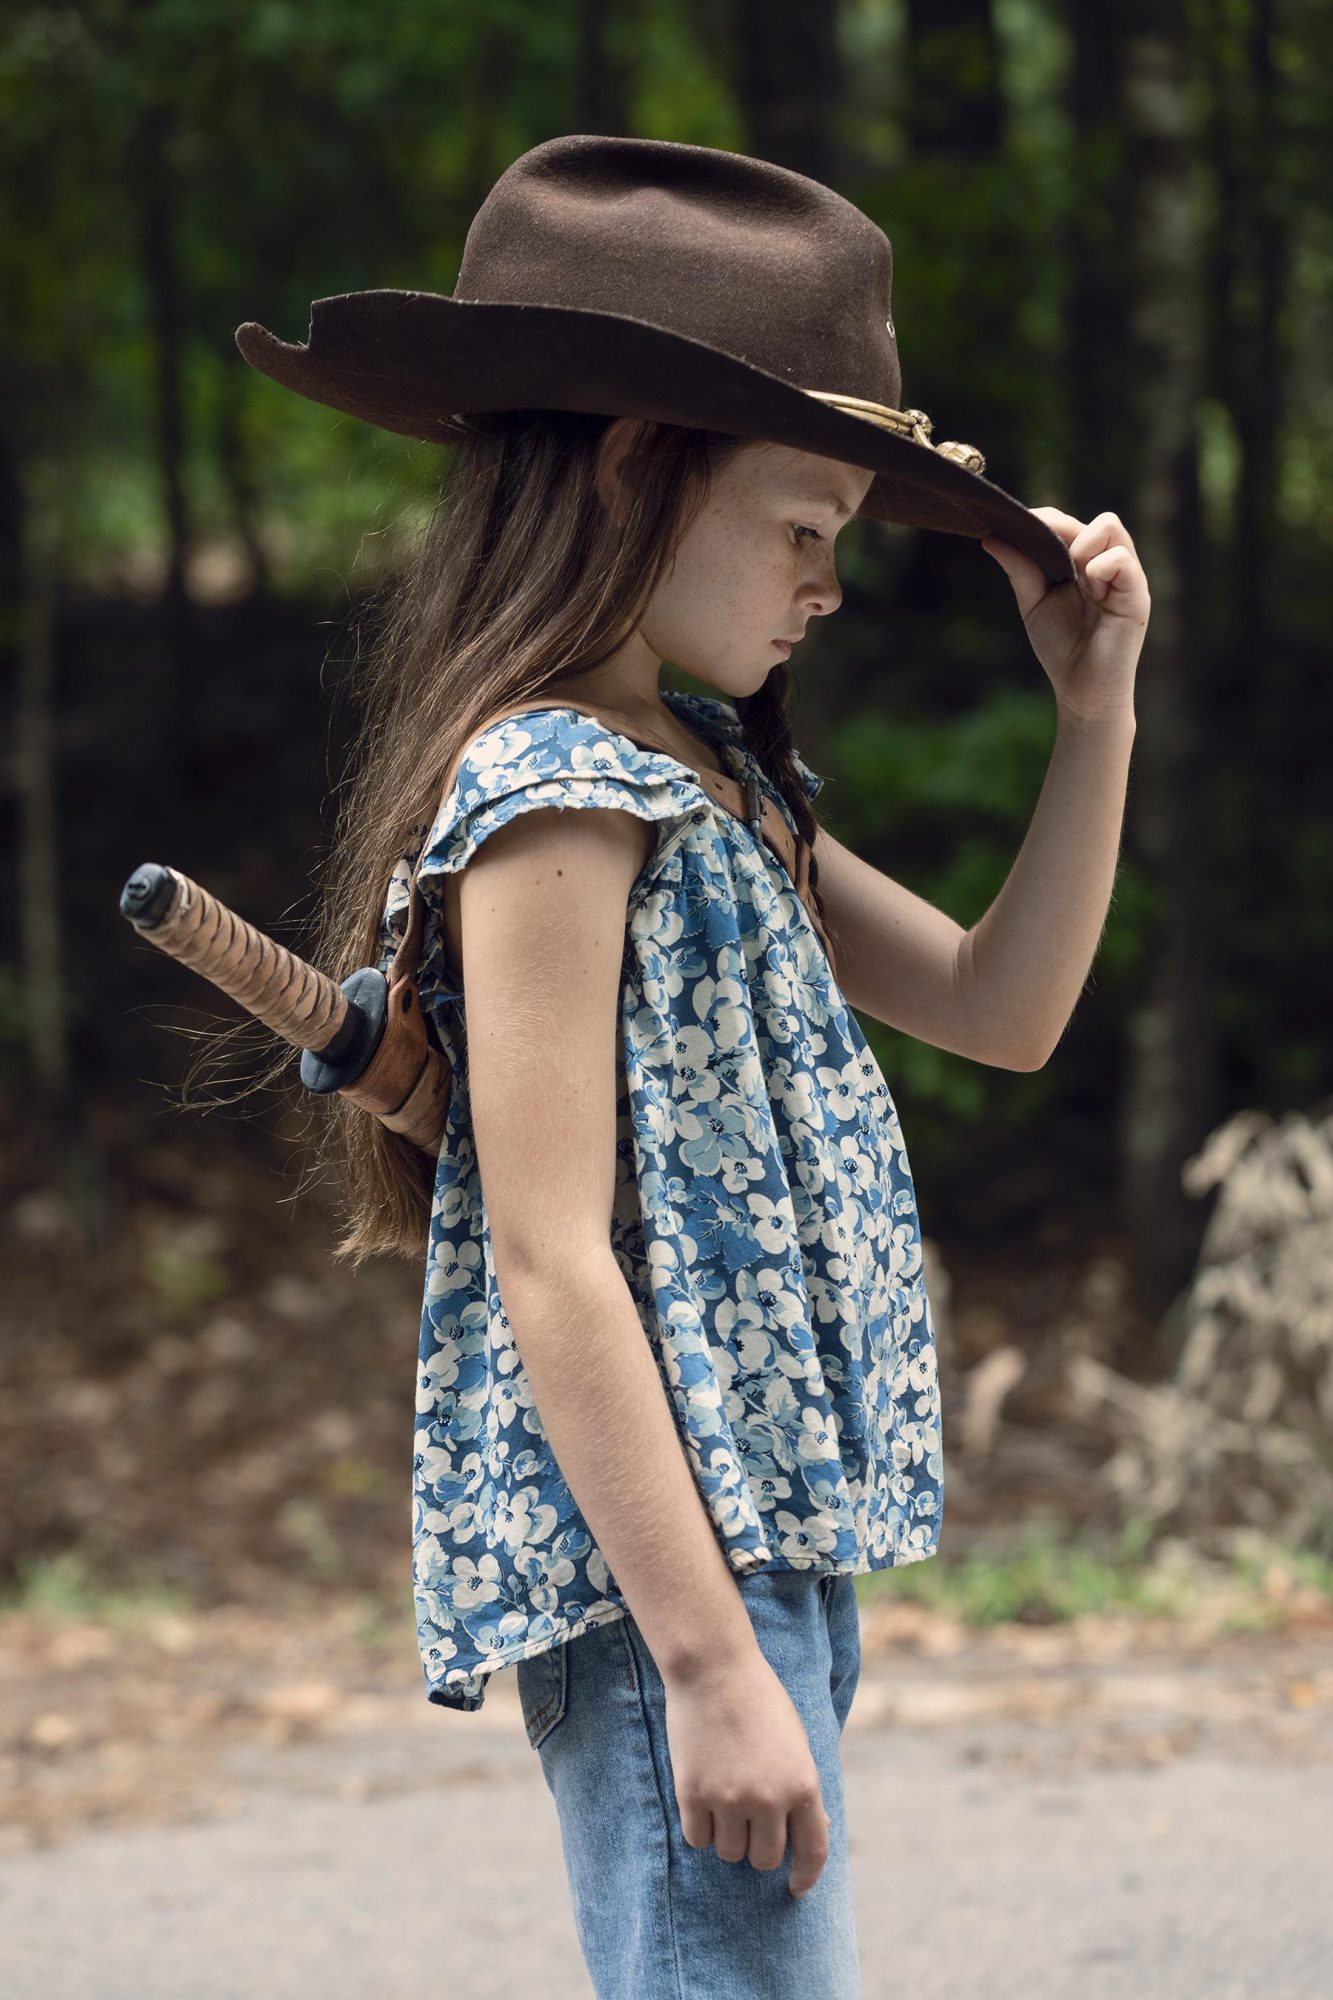 Cailey Fleming as Judith Grimes